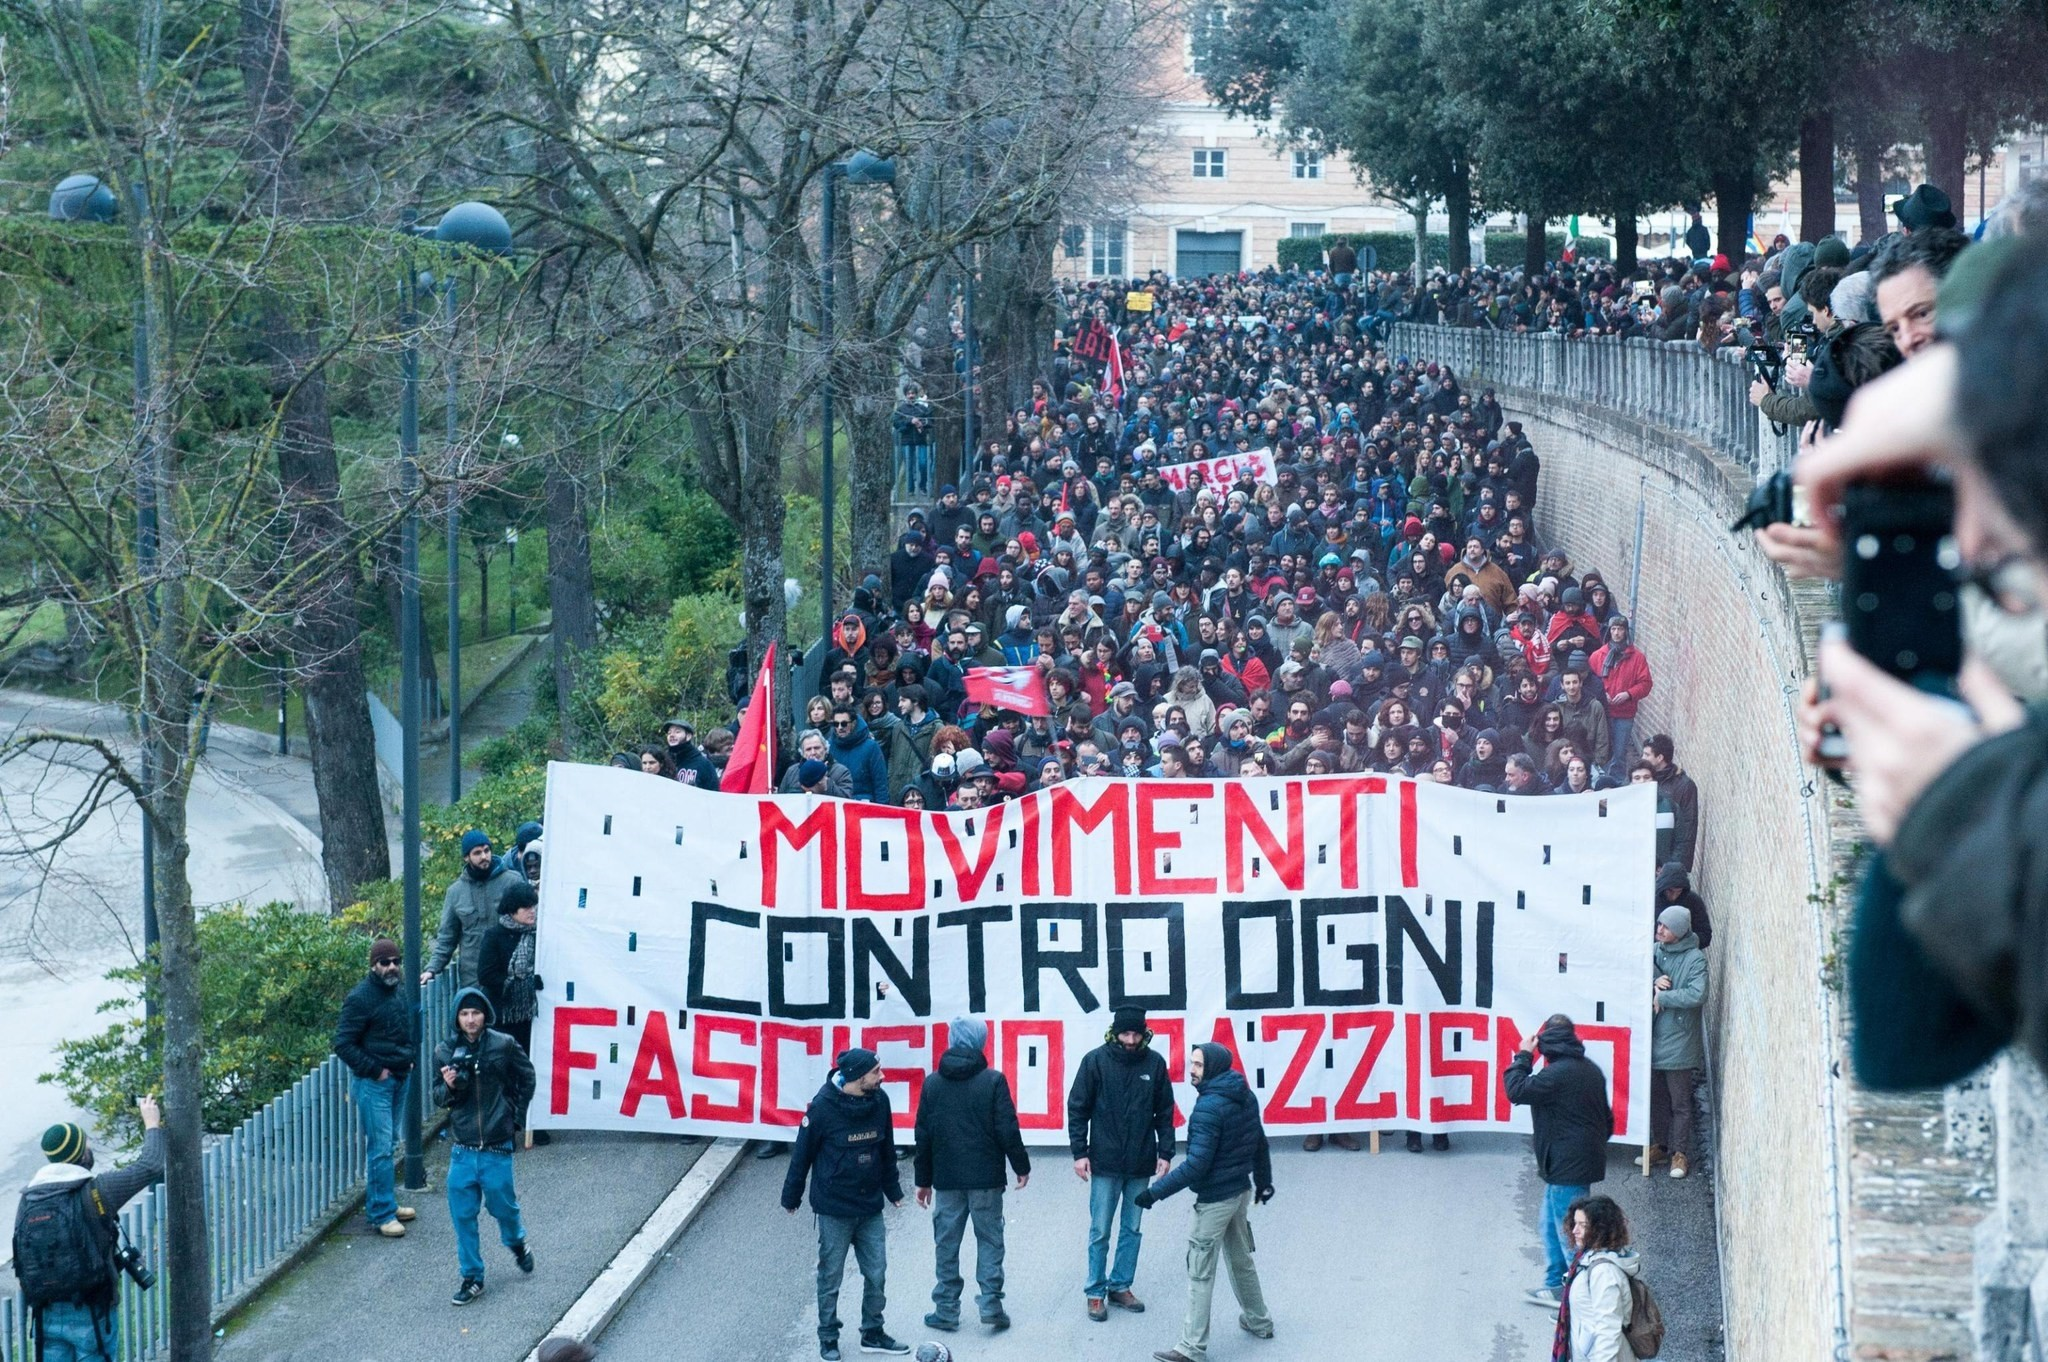 Demonstrators march during an anti-racism rally in Macerata, Italy, Feb. 10, 2018 (EPA Photo)